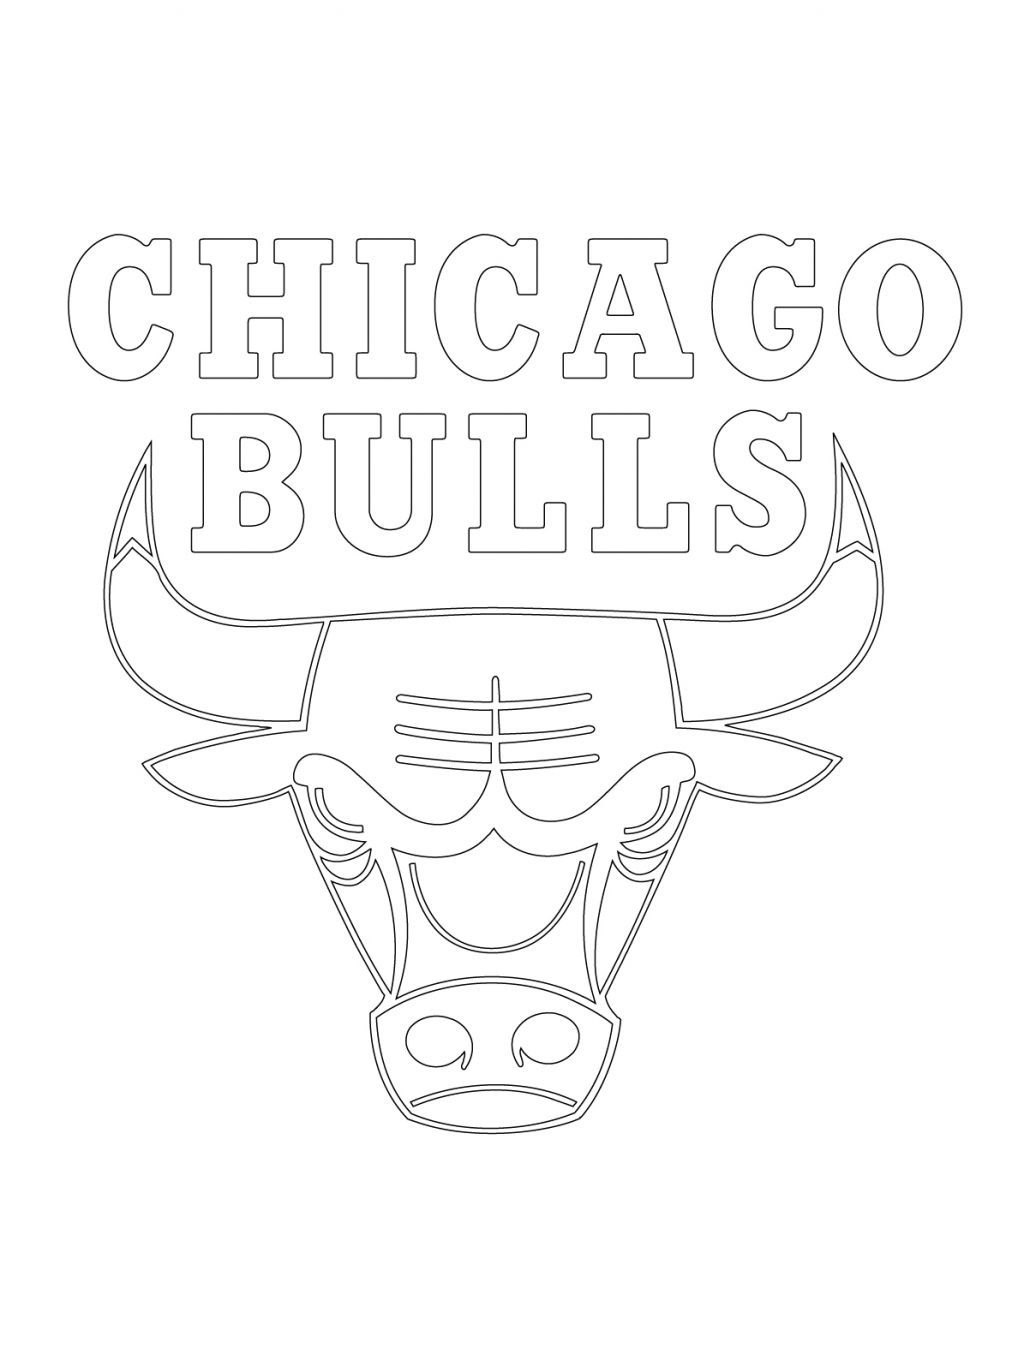 chicago bulls coloring pages bulls coloring logo pages 2020 check more at https chicago coloring pages bulls